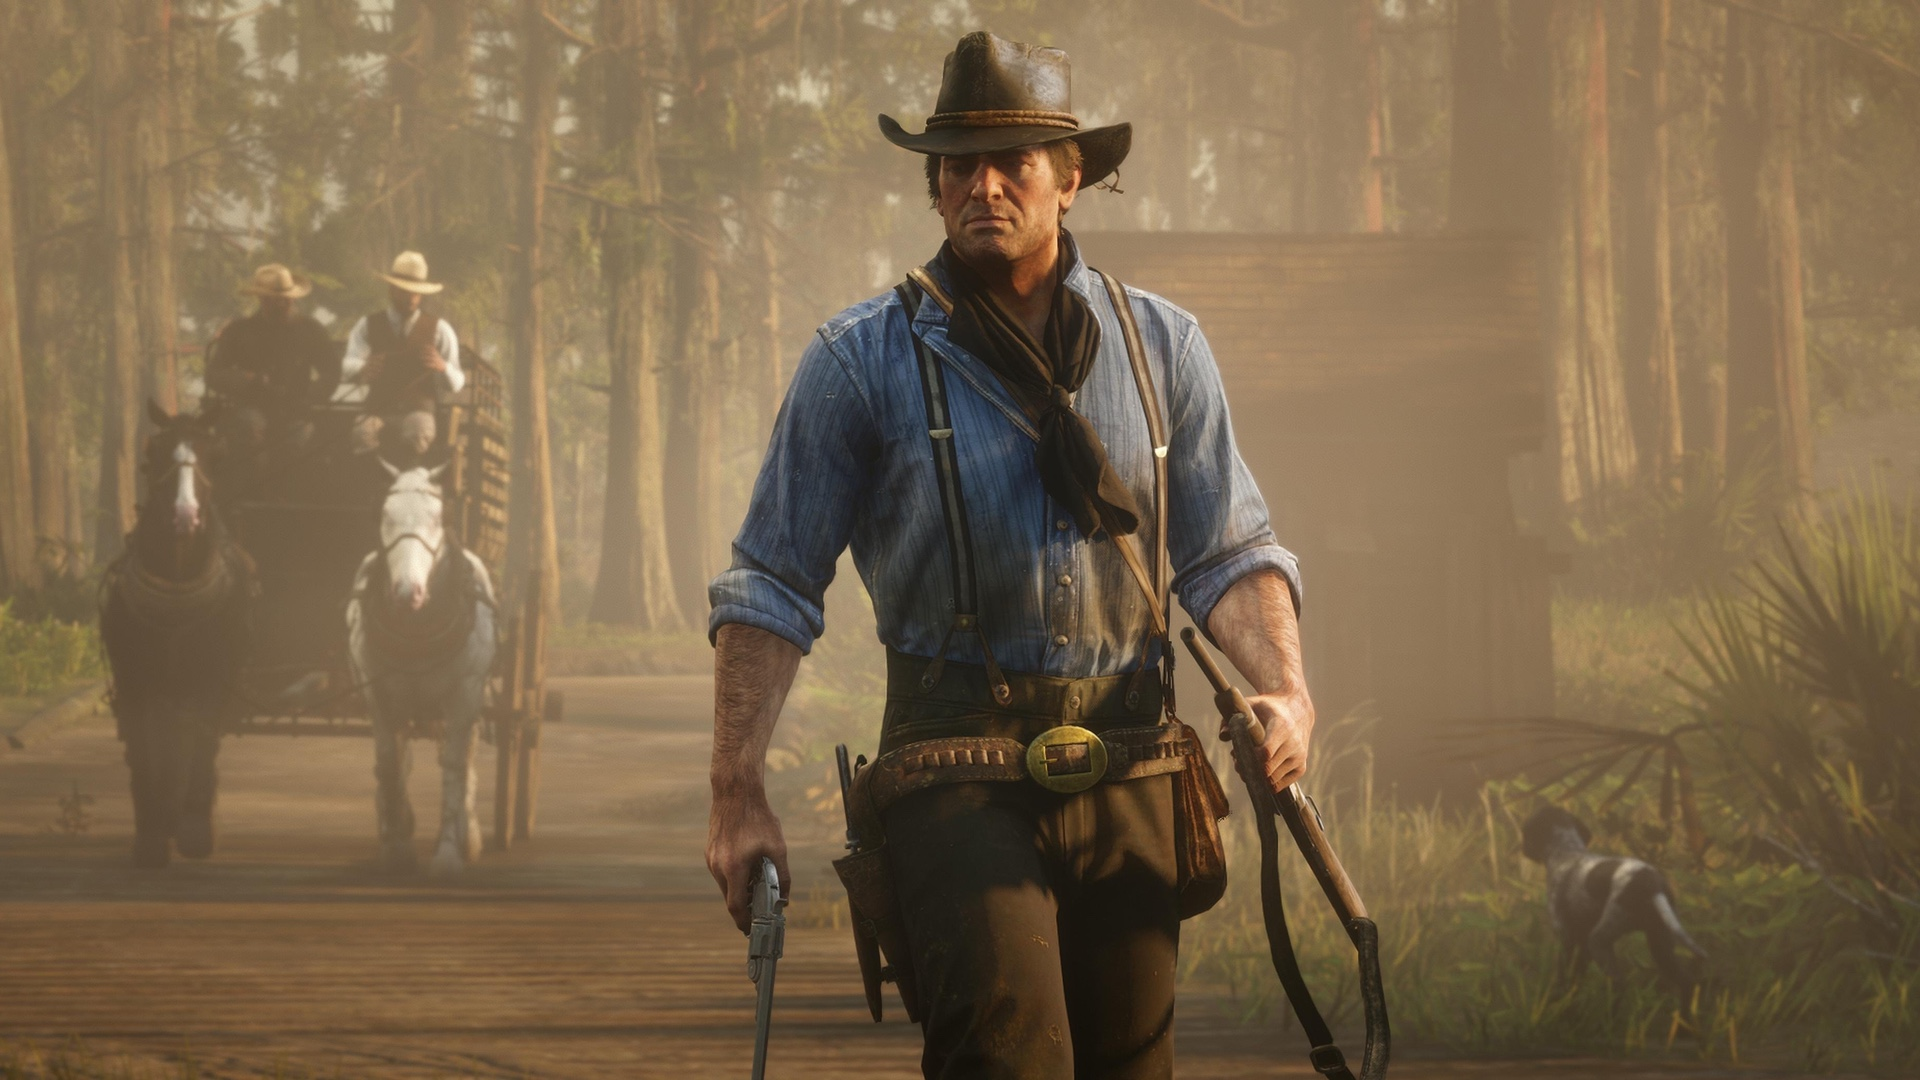 1e246696f0 Dress Up Like a Badass Cowboy Thanks To This RED DEAD REDEMPTION II  Clothing Line — GeekTyrant